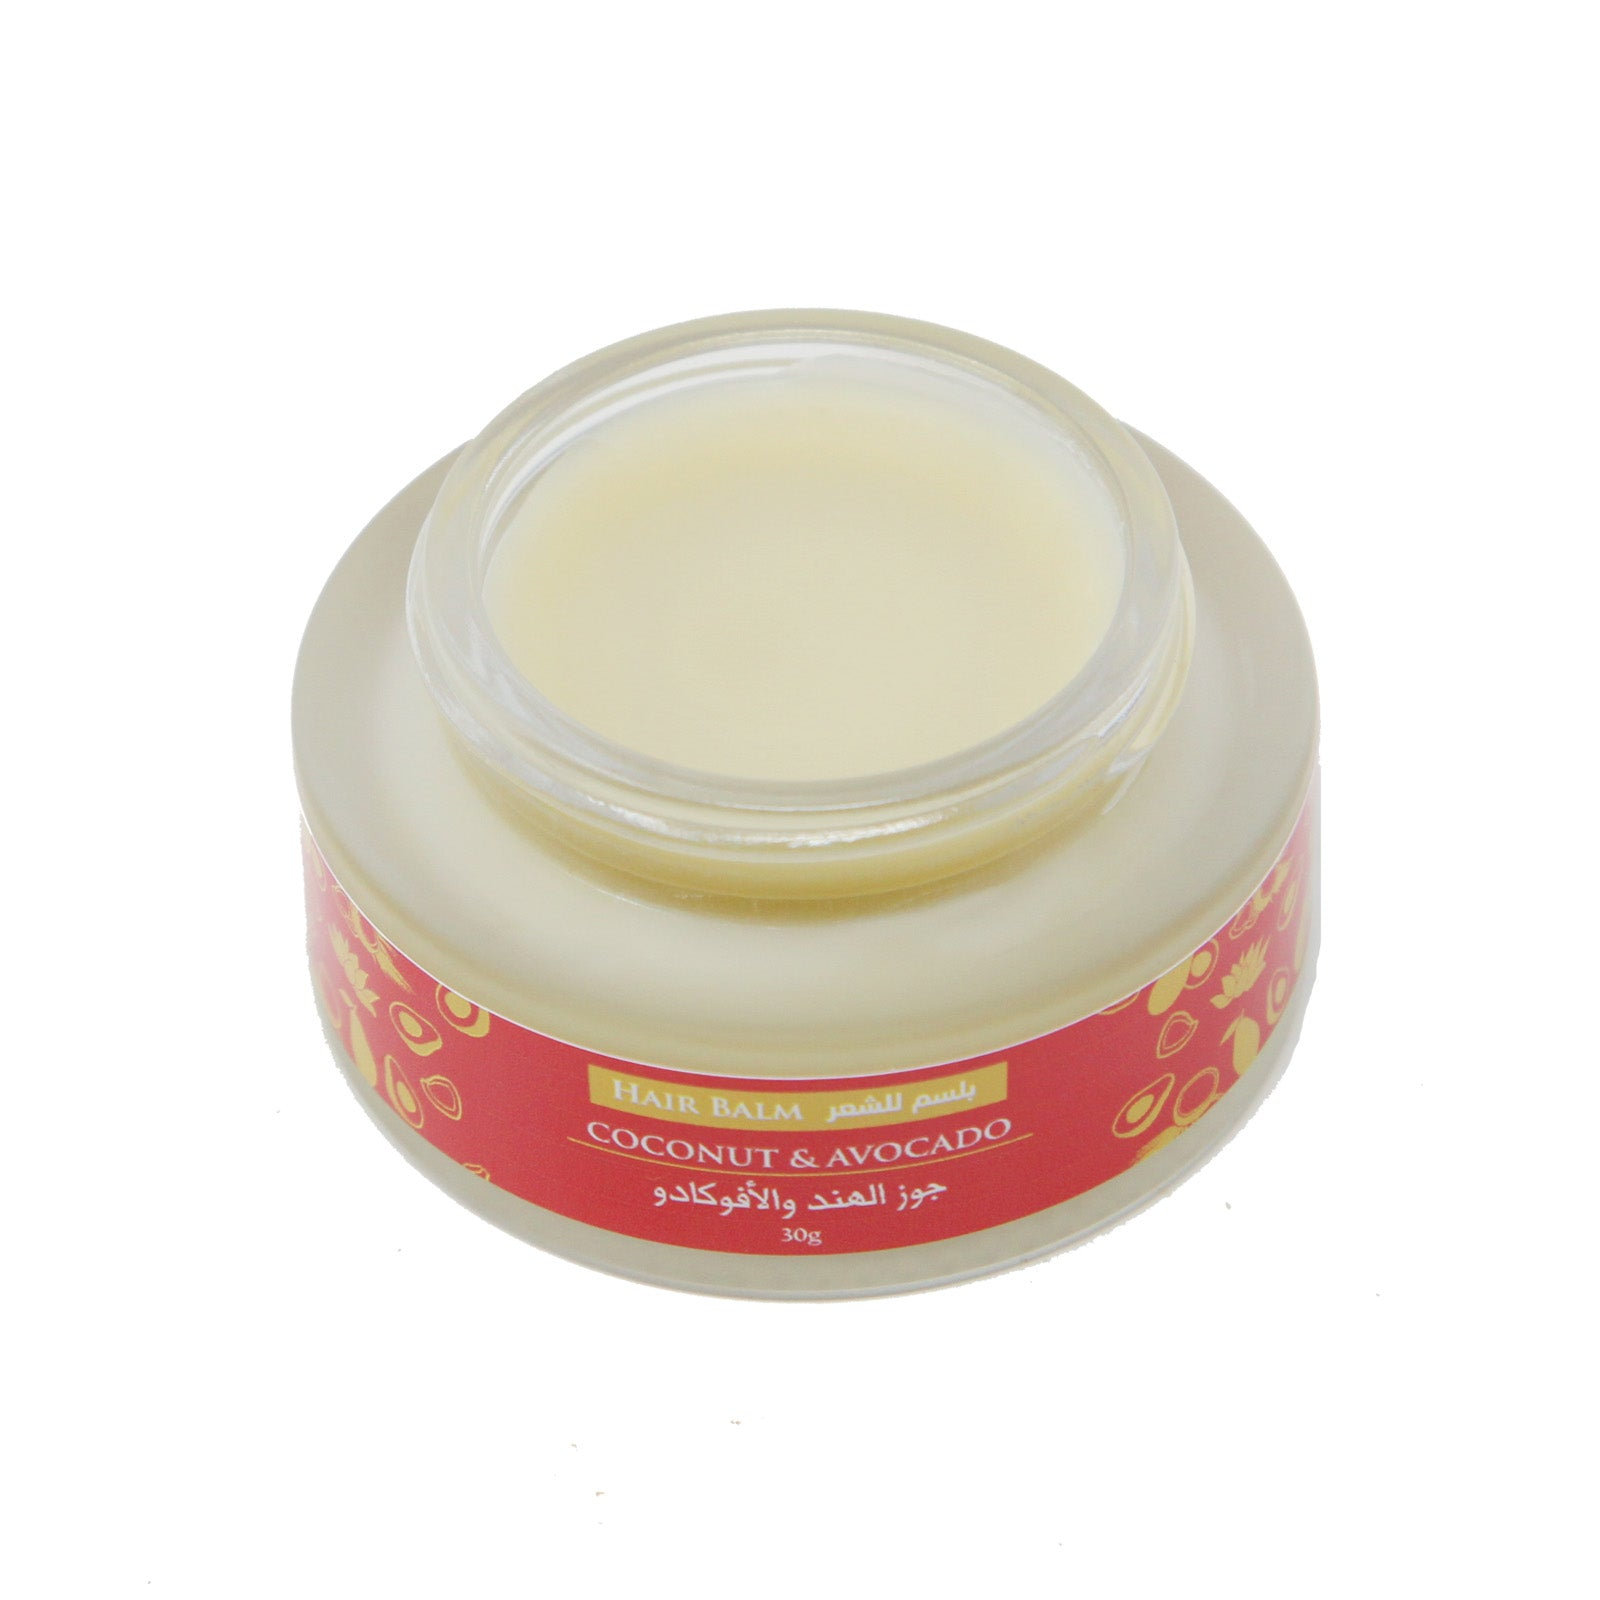 Coconut and Avocado Hair Balm - 30g